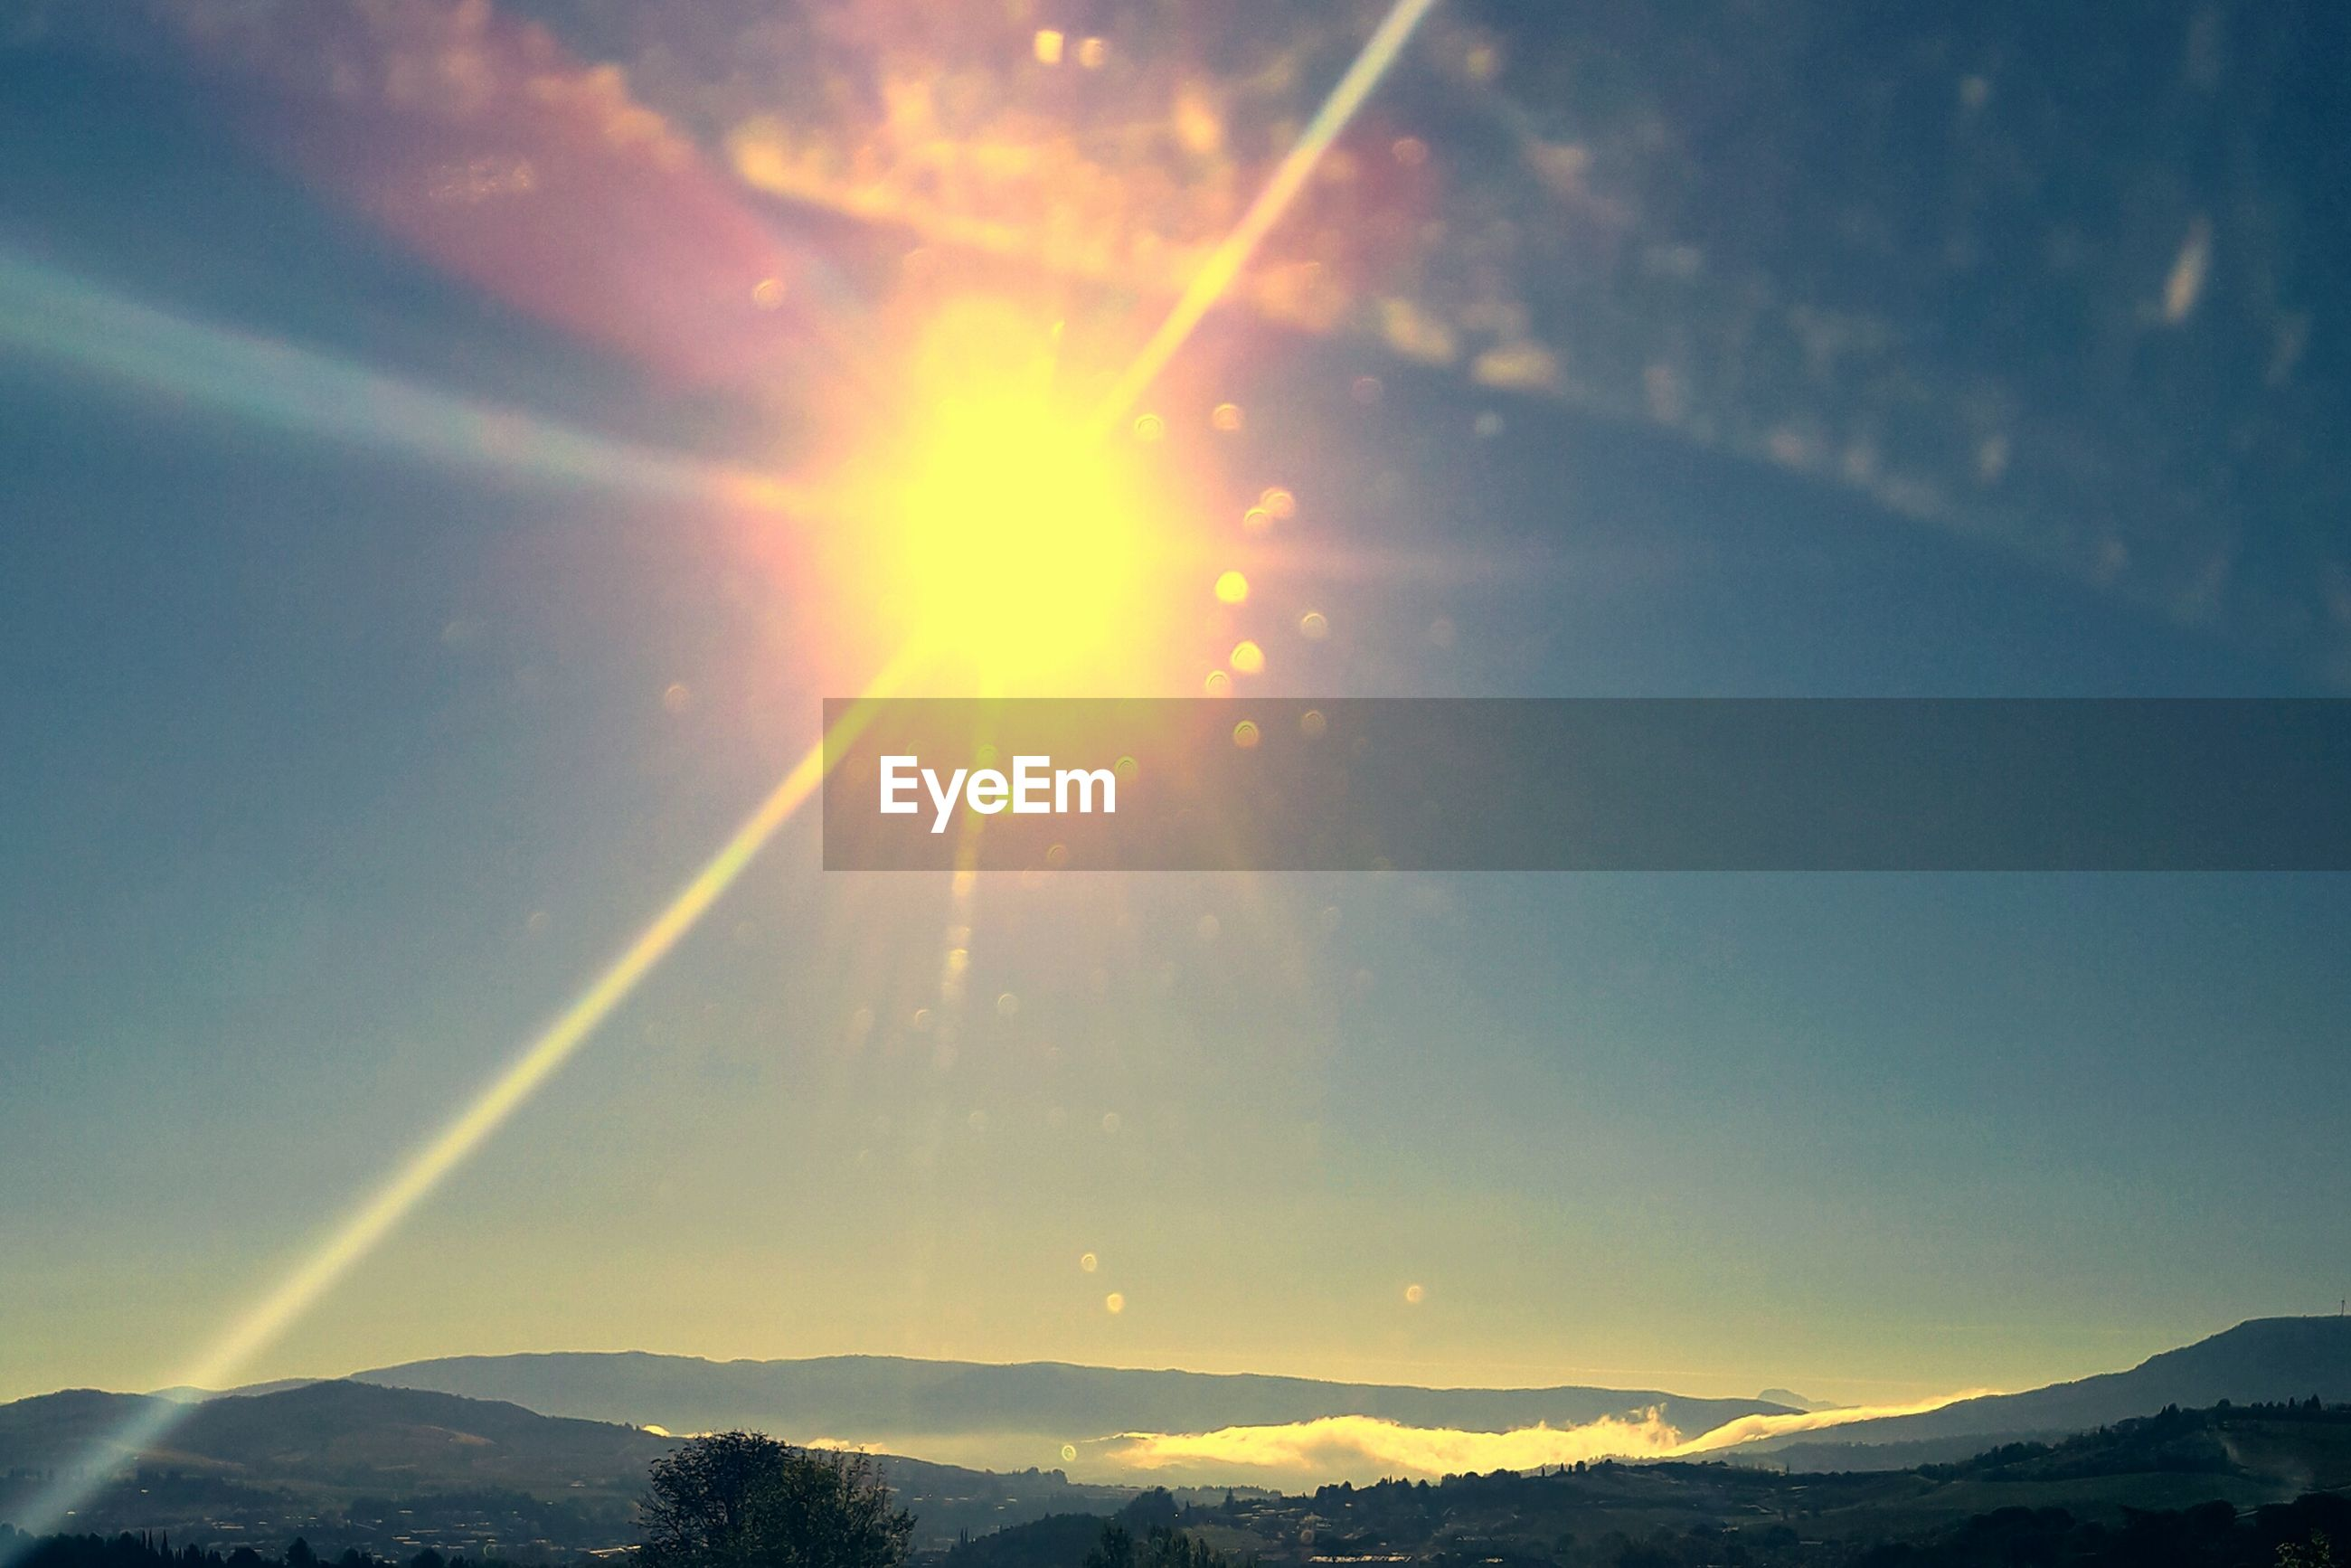 SCENIC VIEW OF MOUNTAINS AGAINST BRIGHT SUN IN SKY